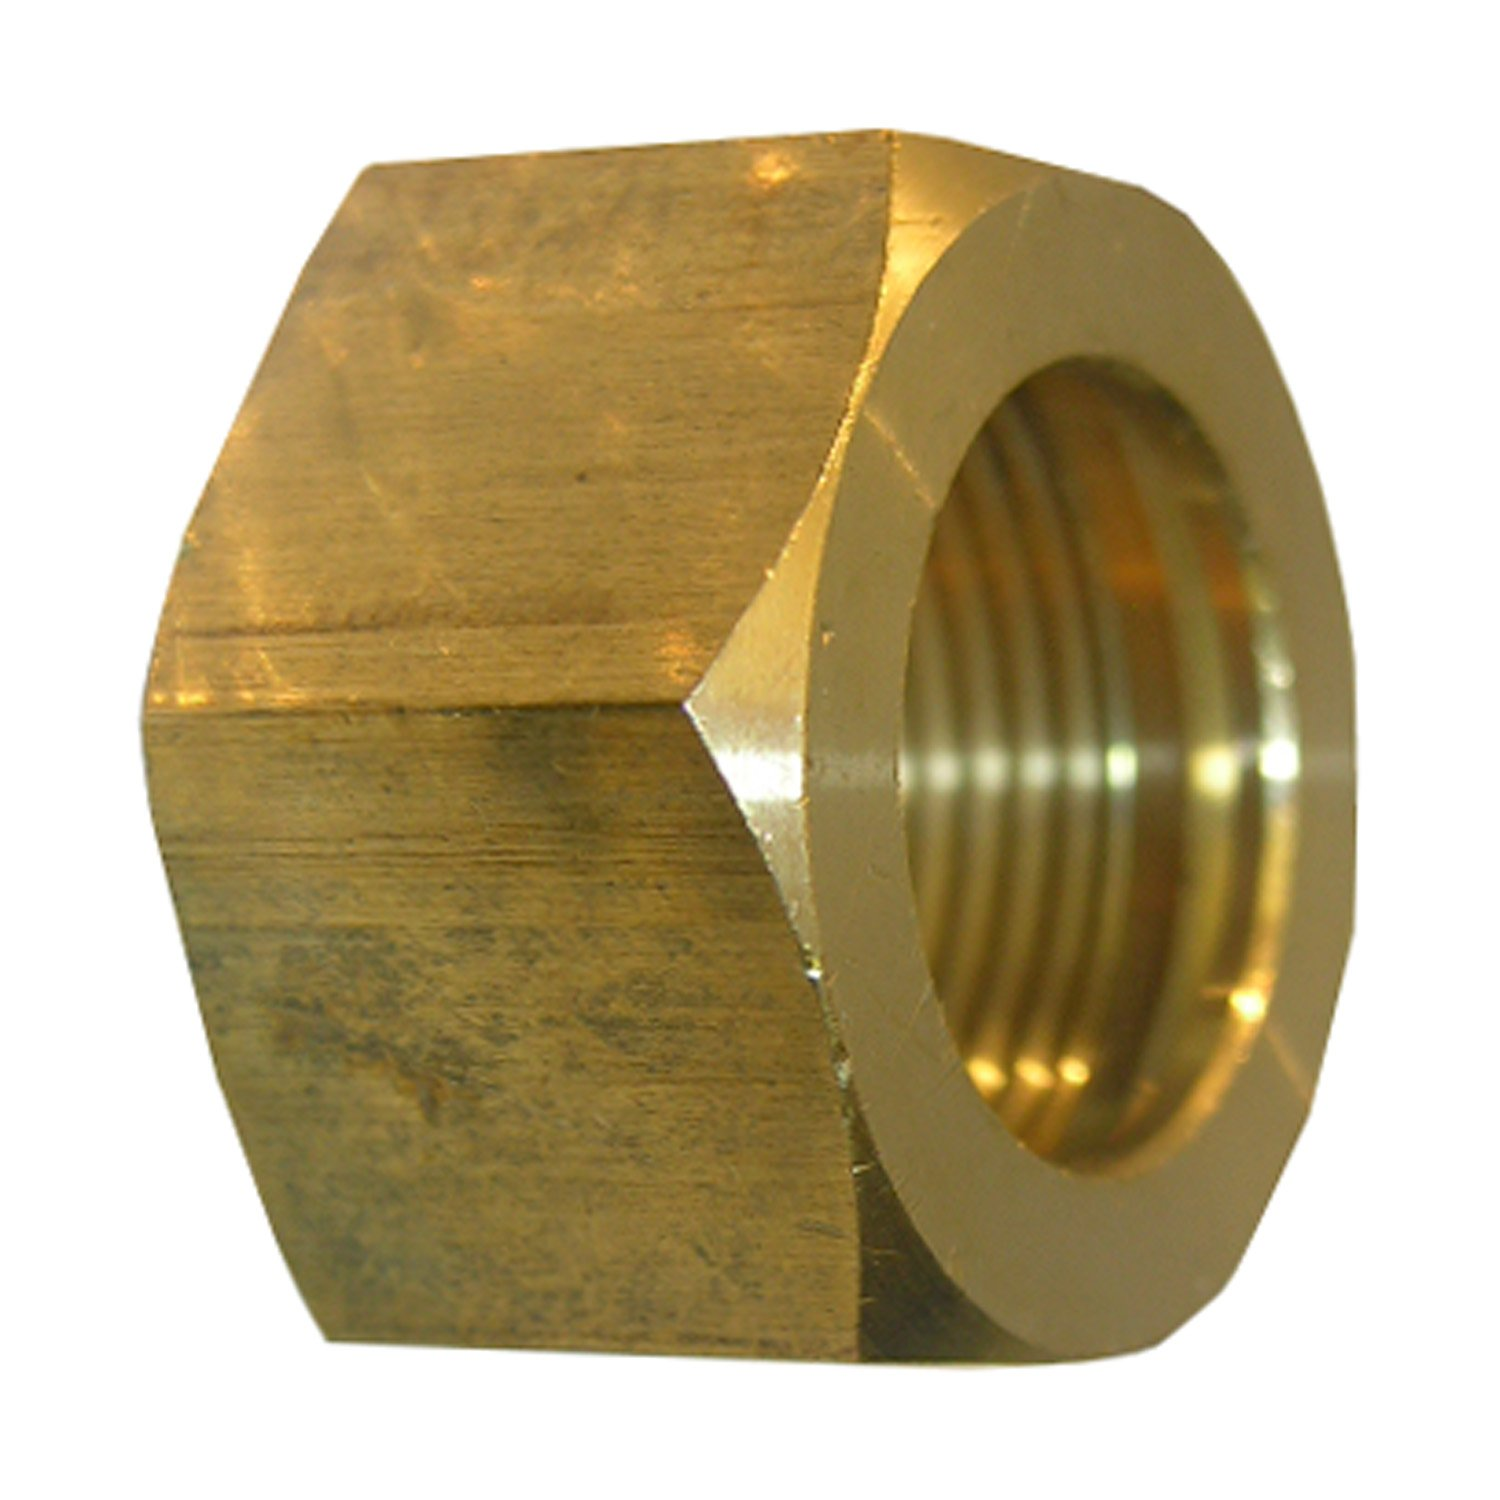 LASCO 17-6135 3//8-Inch Compression Chrome Plated Brass Nut and Sleeve